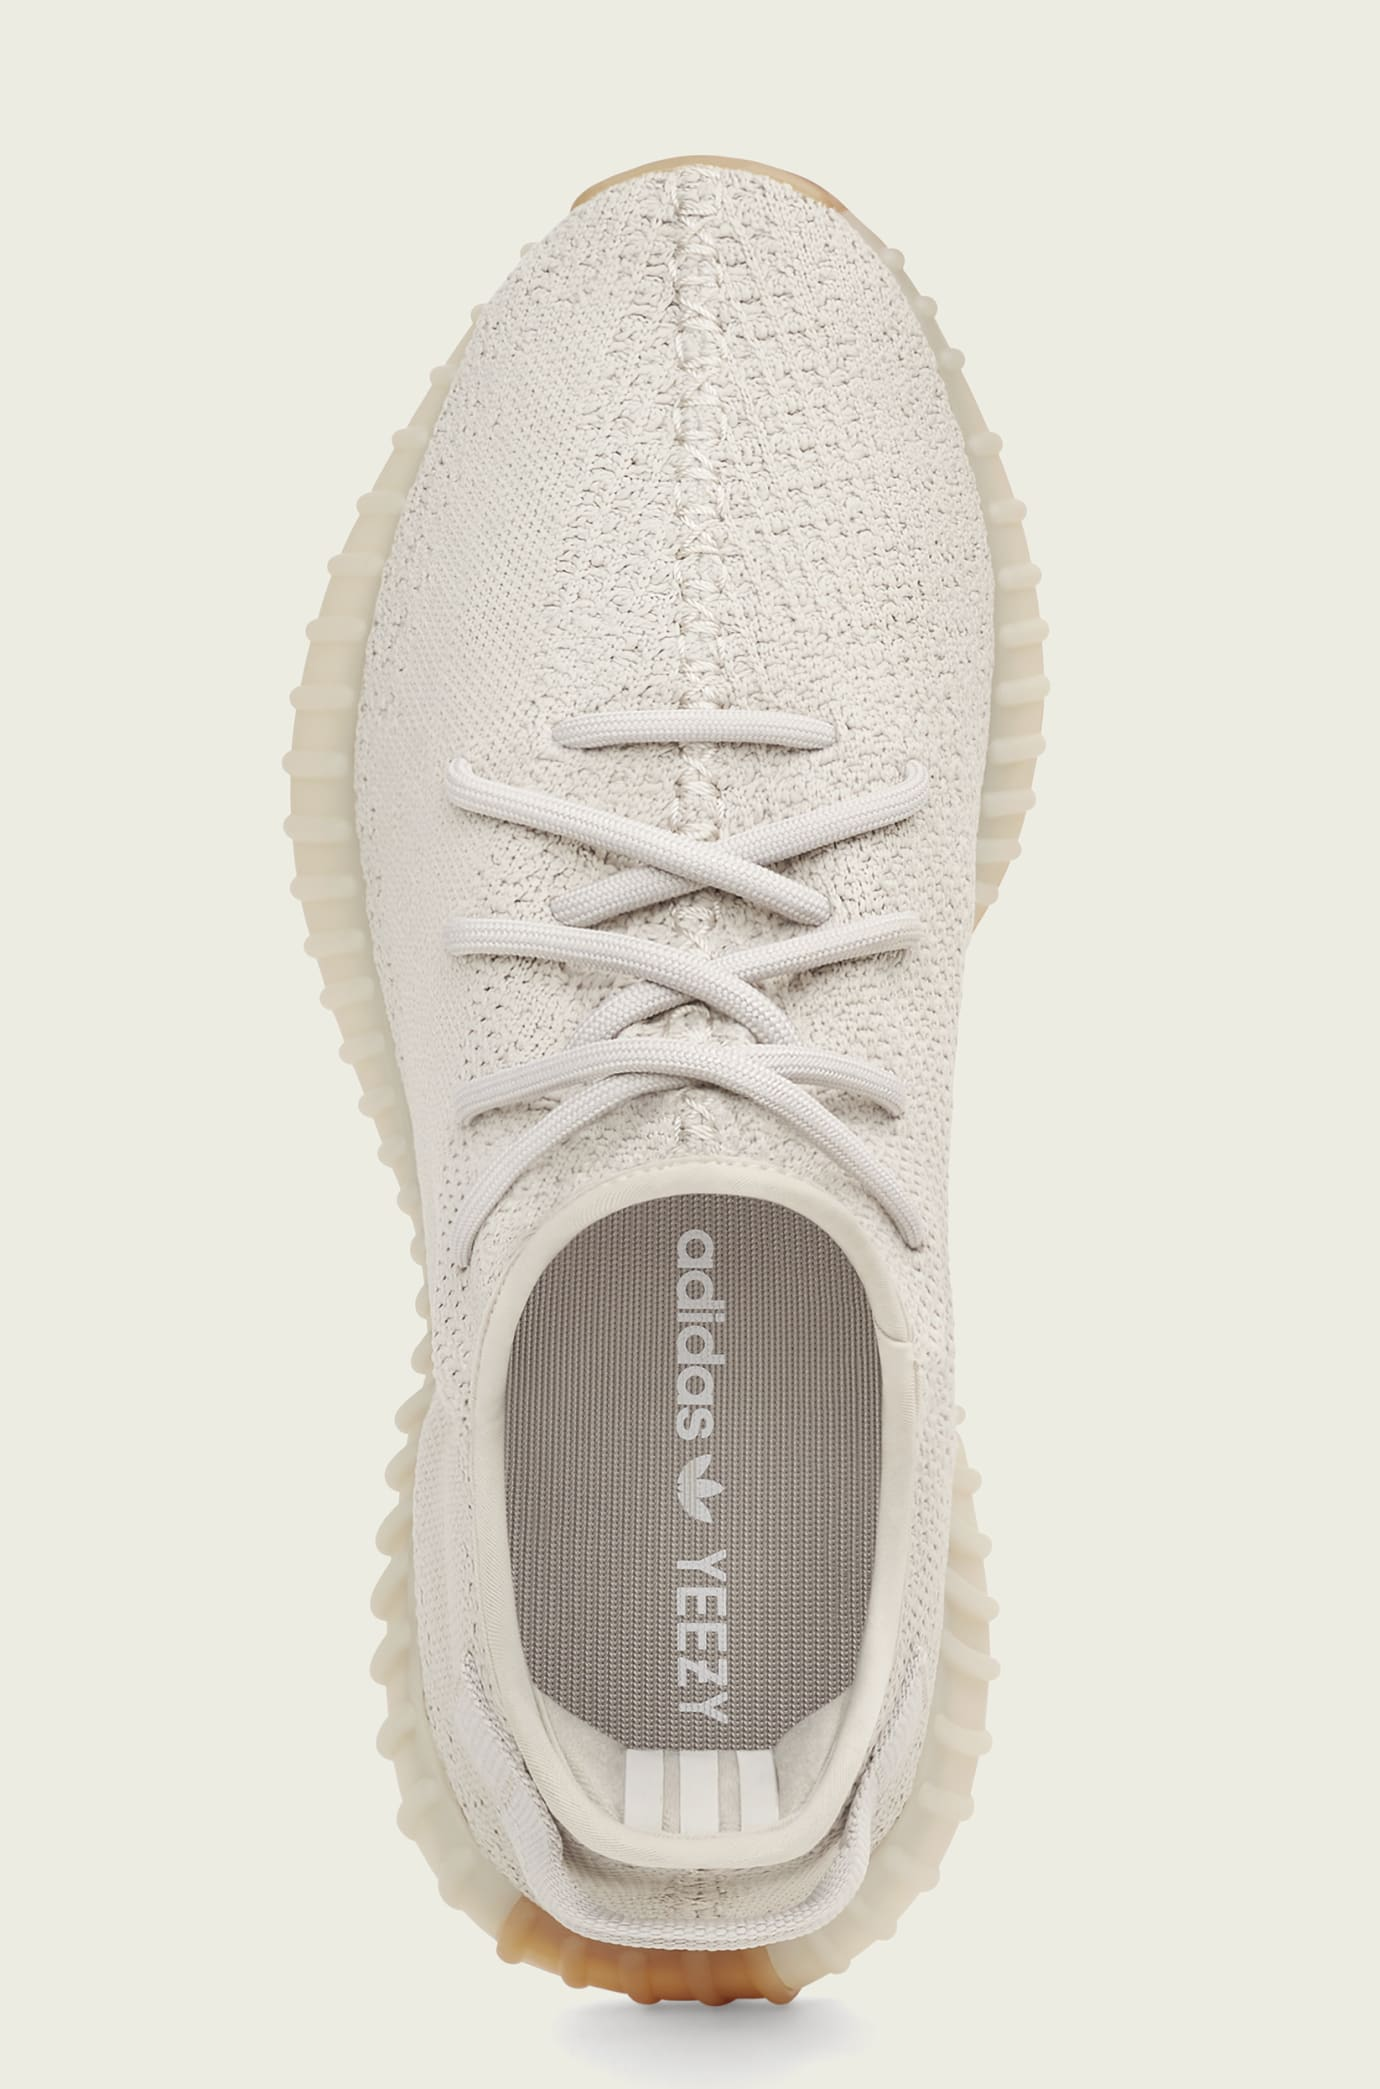 Adidas Yeezy Boost 350 V2 'Sesame' F99710 (Top)